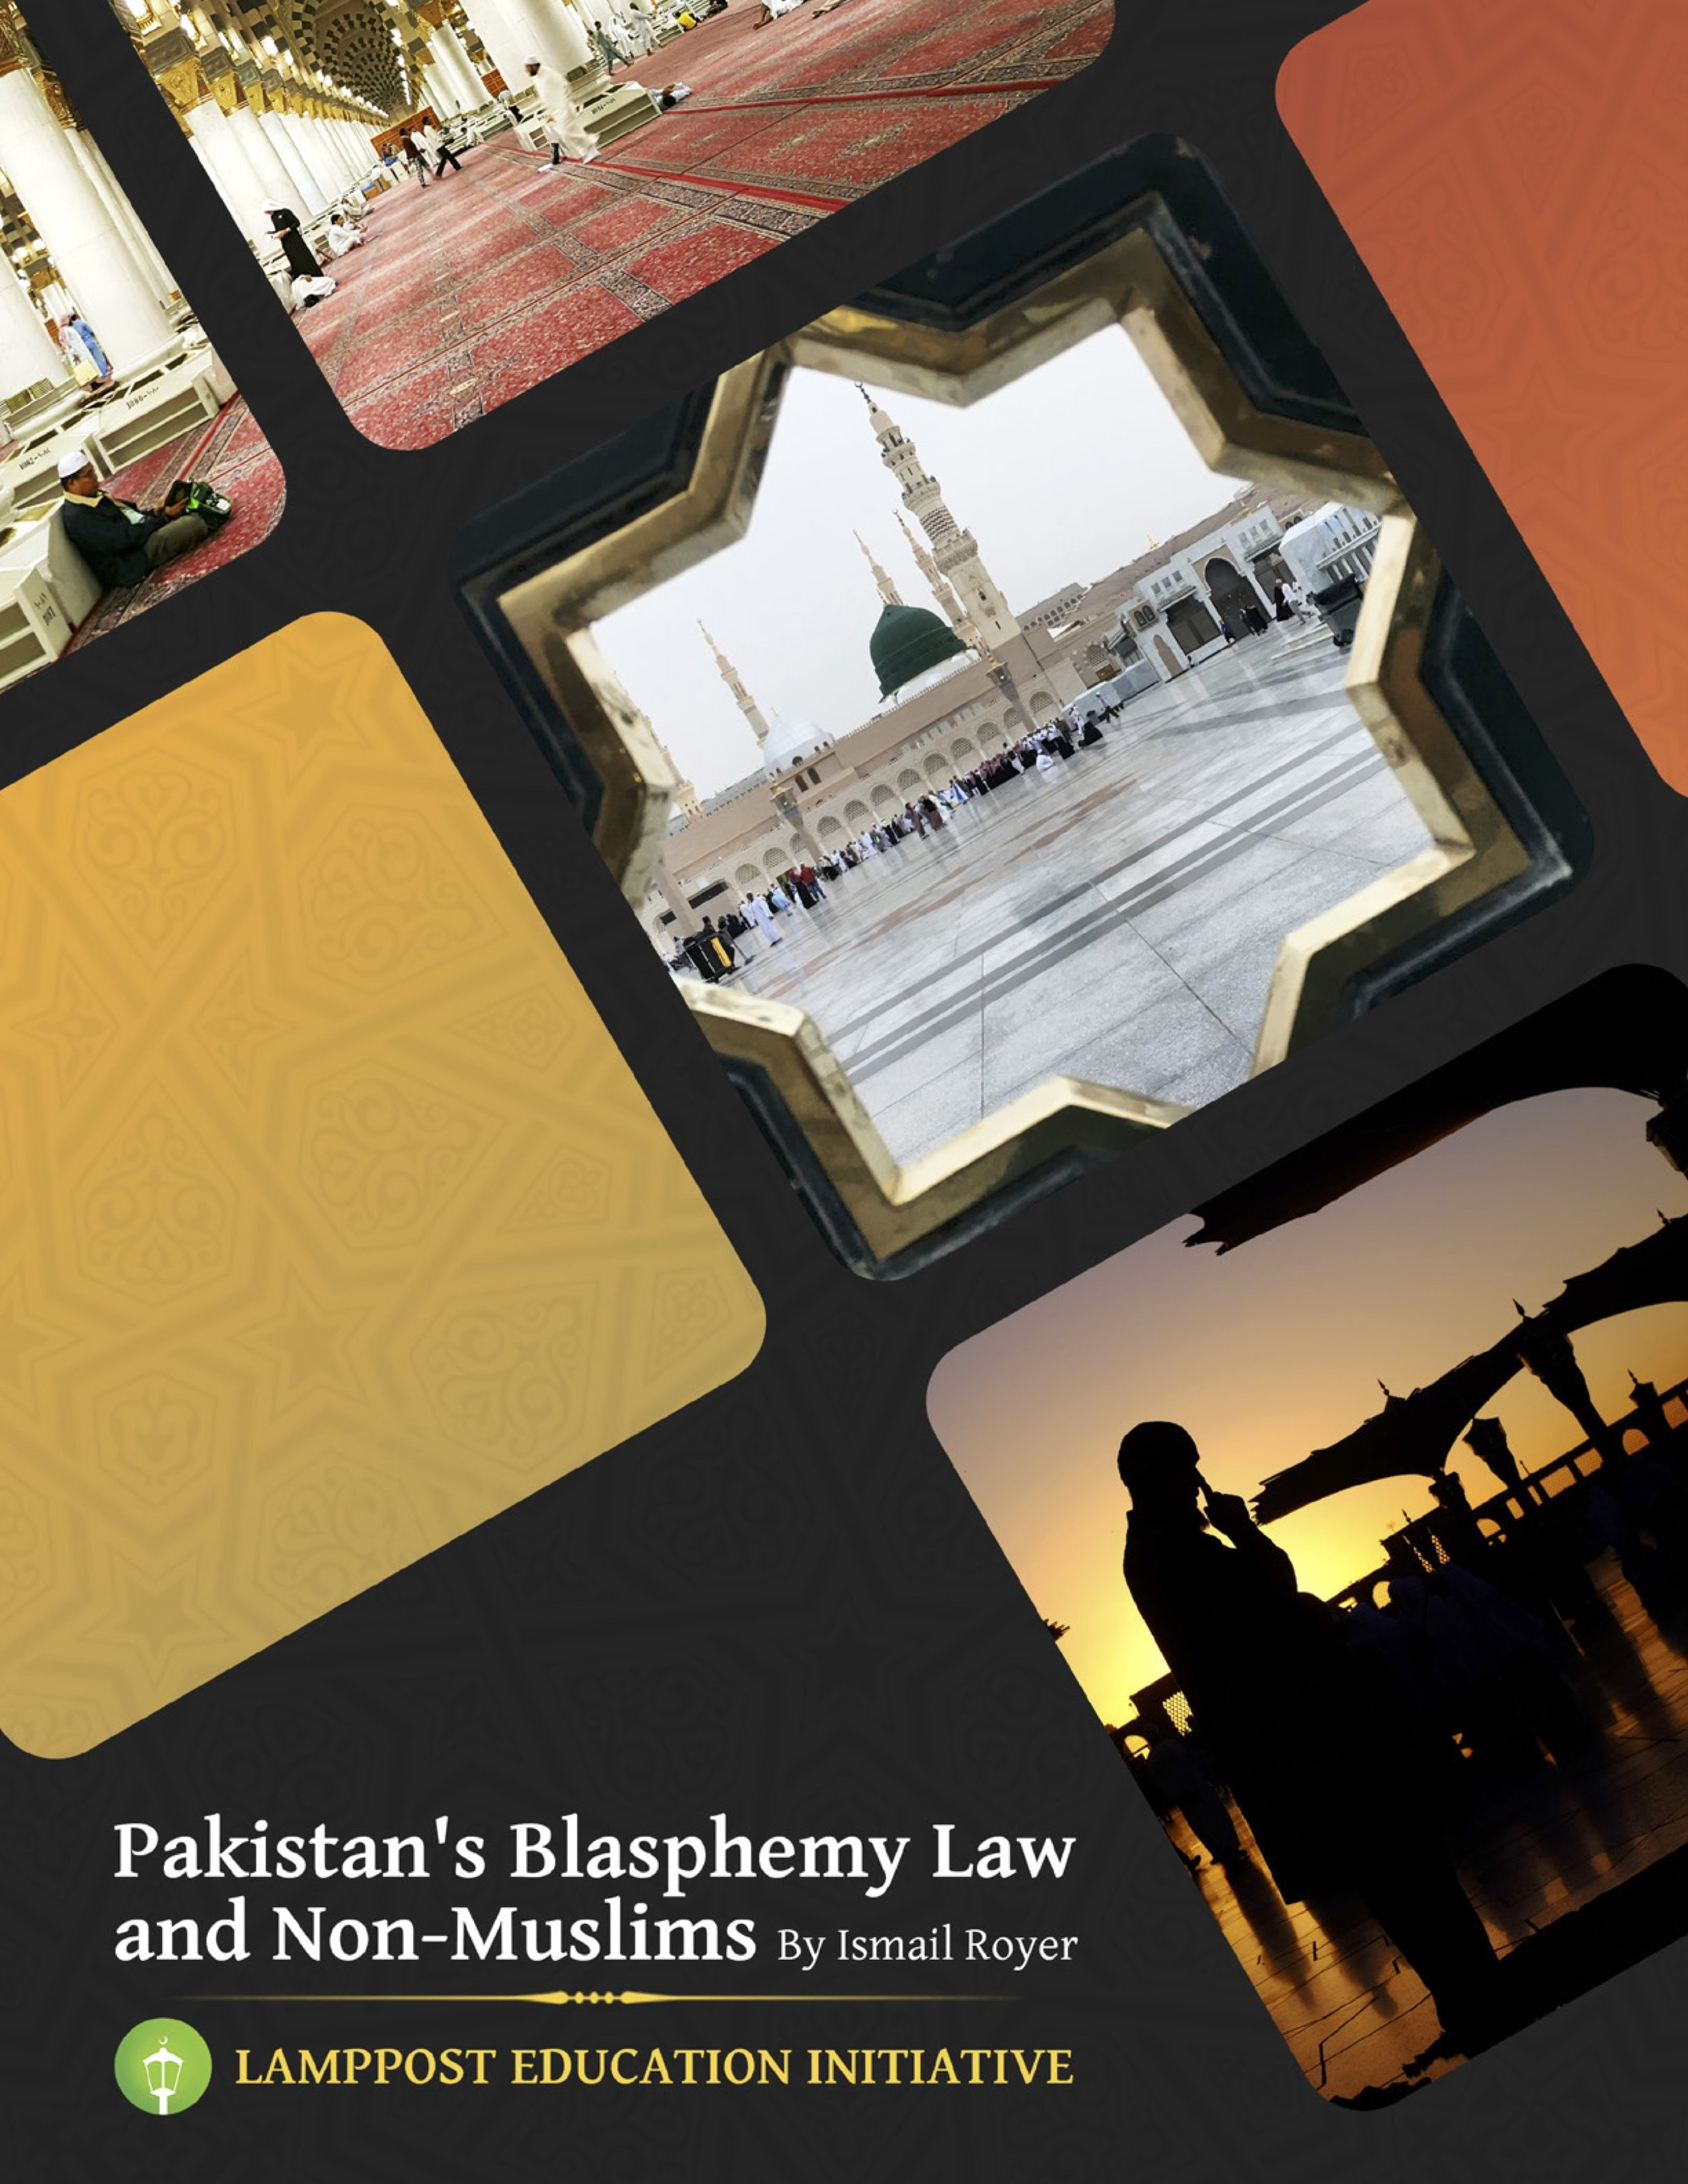 Pakistan's Blasphemy Law and Non-Muslims by Ismail Royer (Lamppost Education Initiative, 2018) - For additional context read this exploration of blasphemy in Islamic jurisprudence and an examination of Pakistan's blasphemy law today by Ismail Royer.